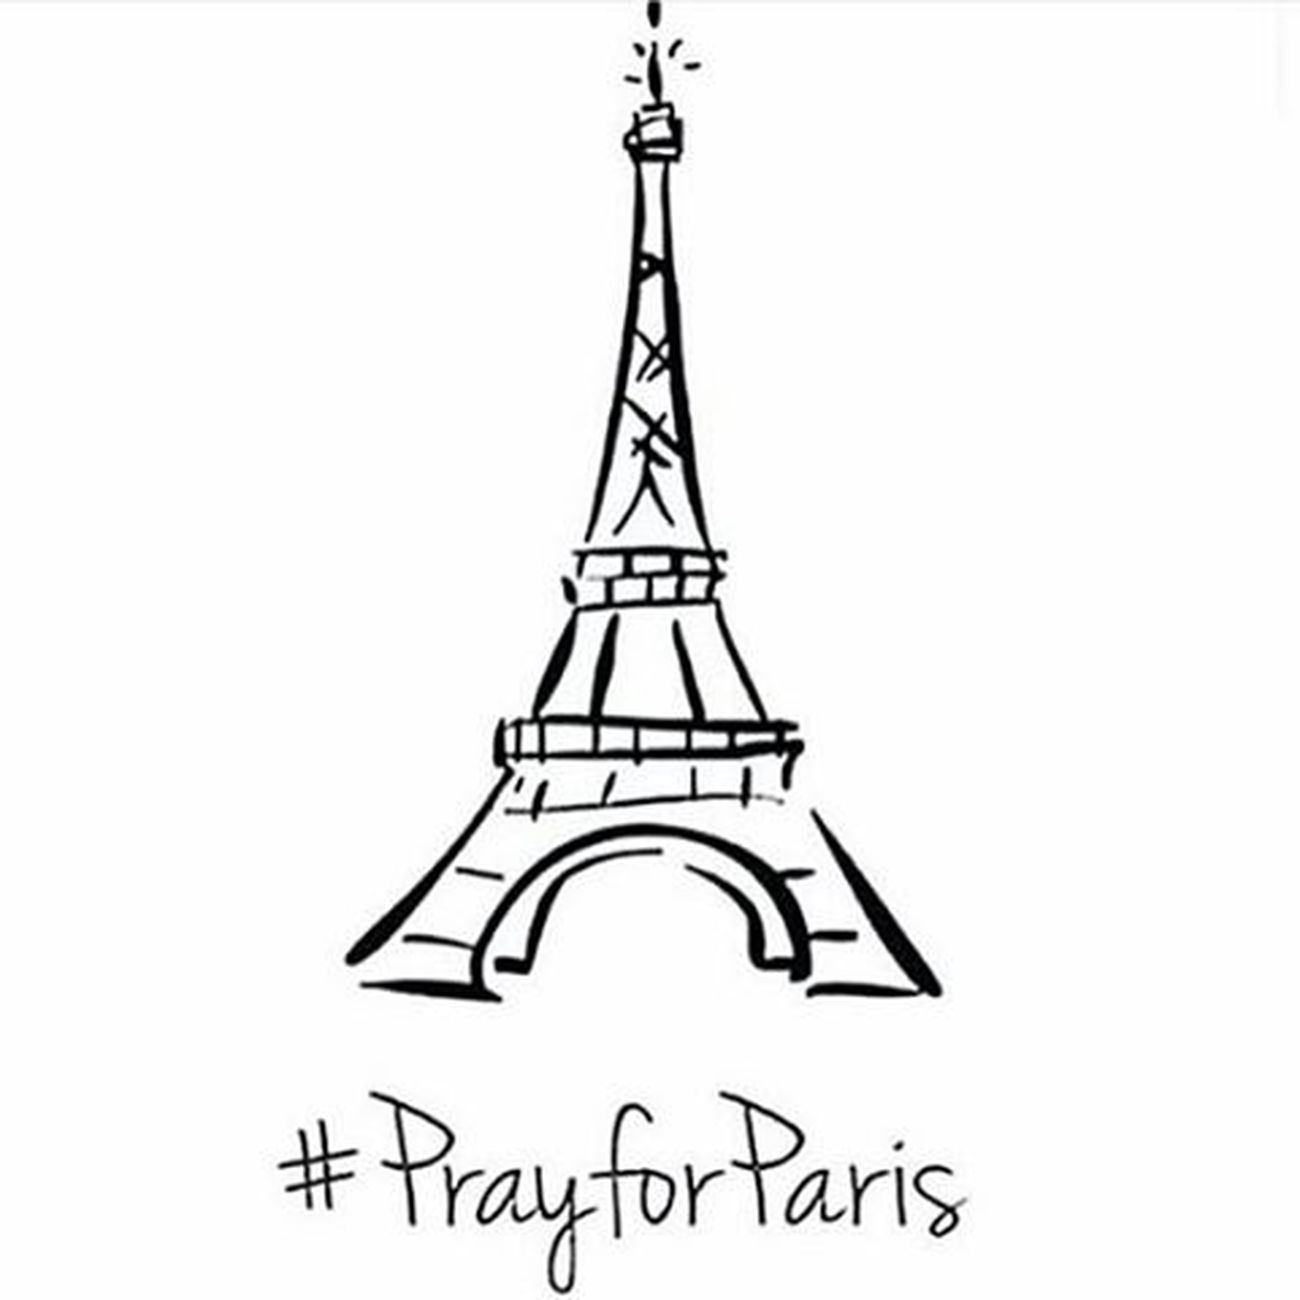 Pedir que ya no hayan mas perdidas de inocentes vidas es solo lo que pido. PraytoParis Picture Picoftheday Paris France Francia Honestly Pray Milkymilkymilk Mileycyrusandherdeadpetz Europe Live Life Prayforparis Stopterrorism StopBullying